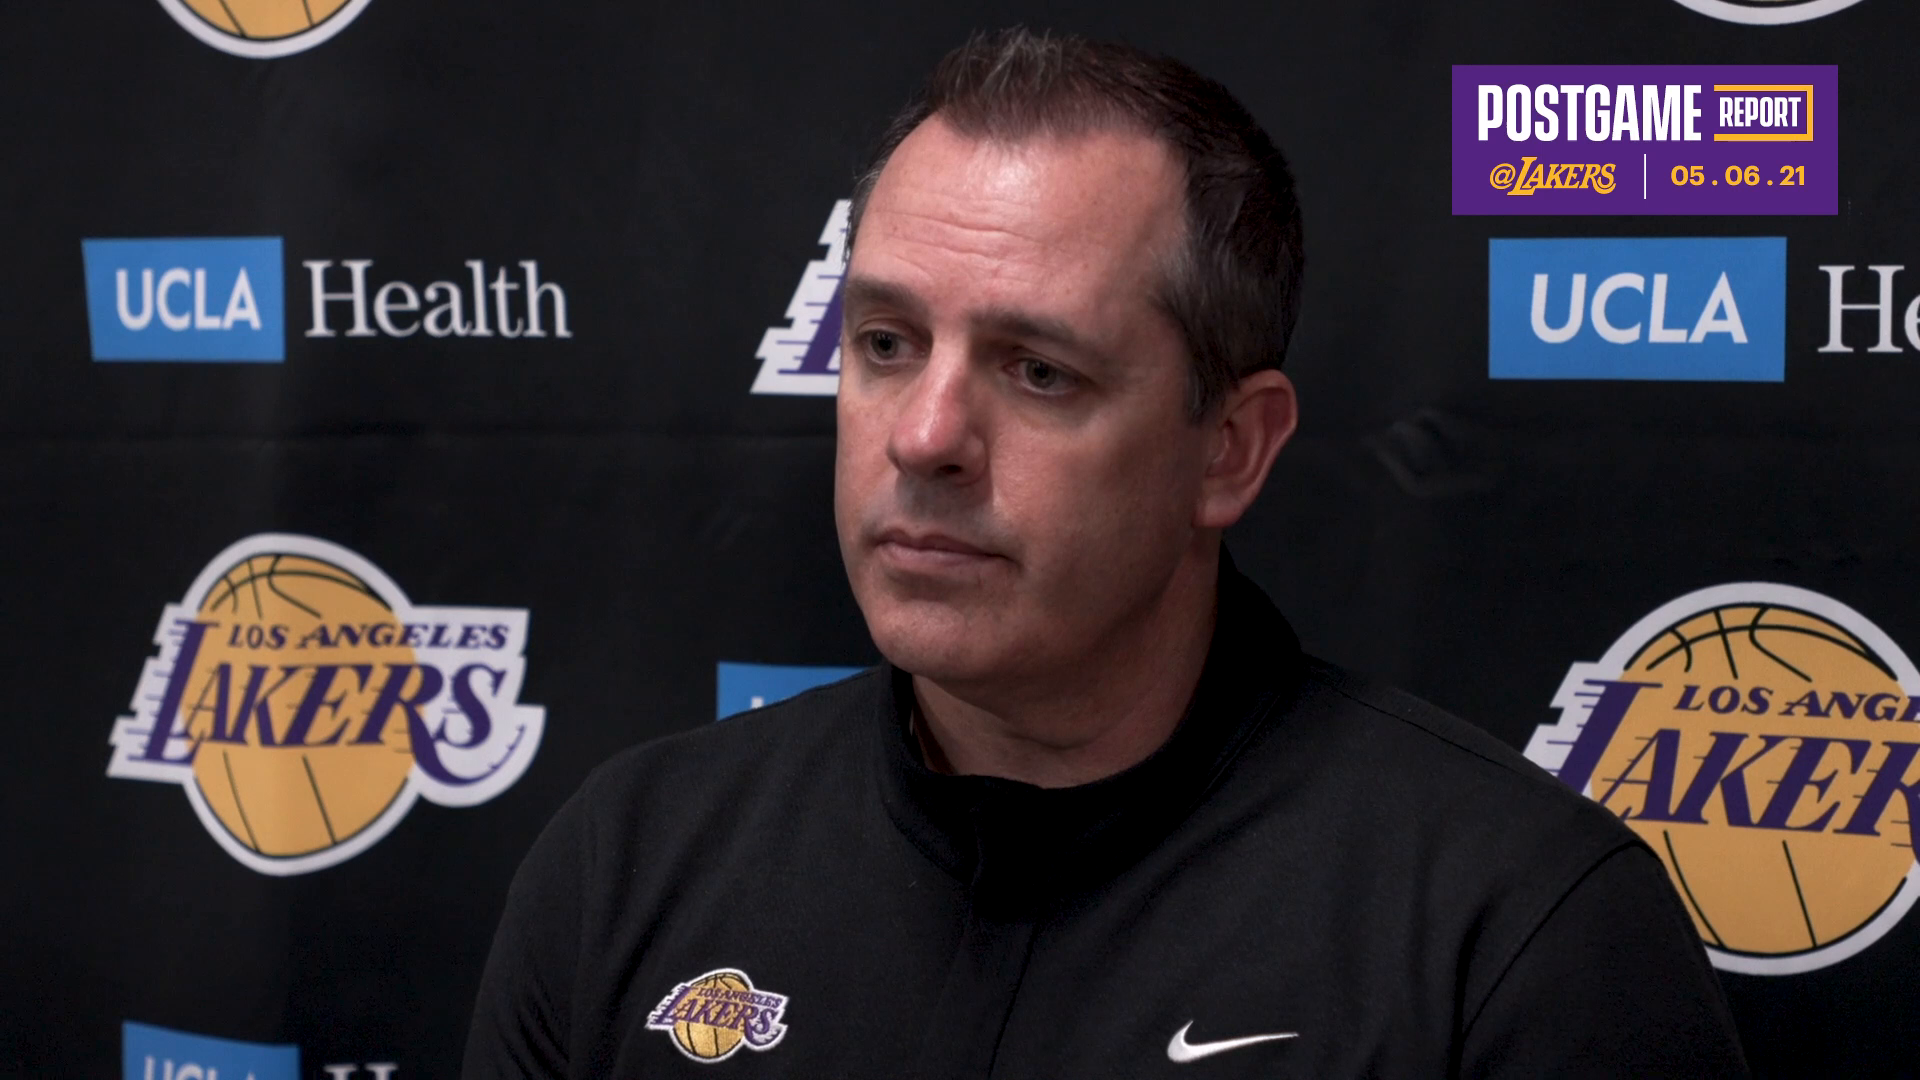 Lakers Postgame: Frank Vogel (5/6/21)